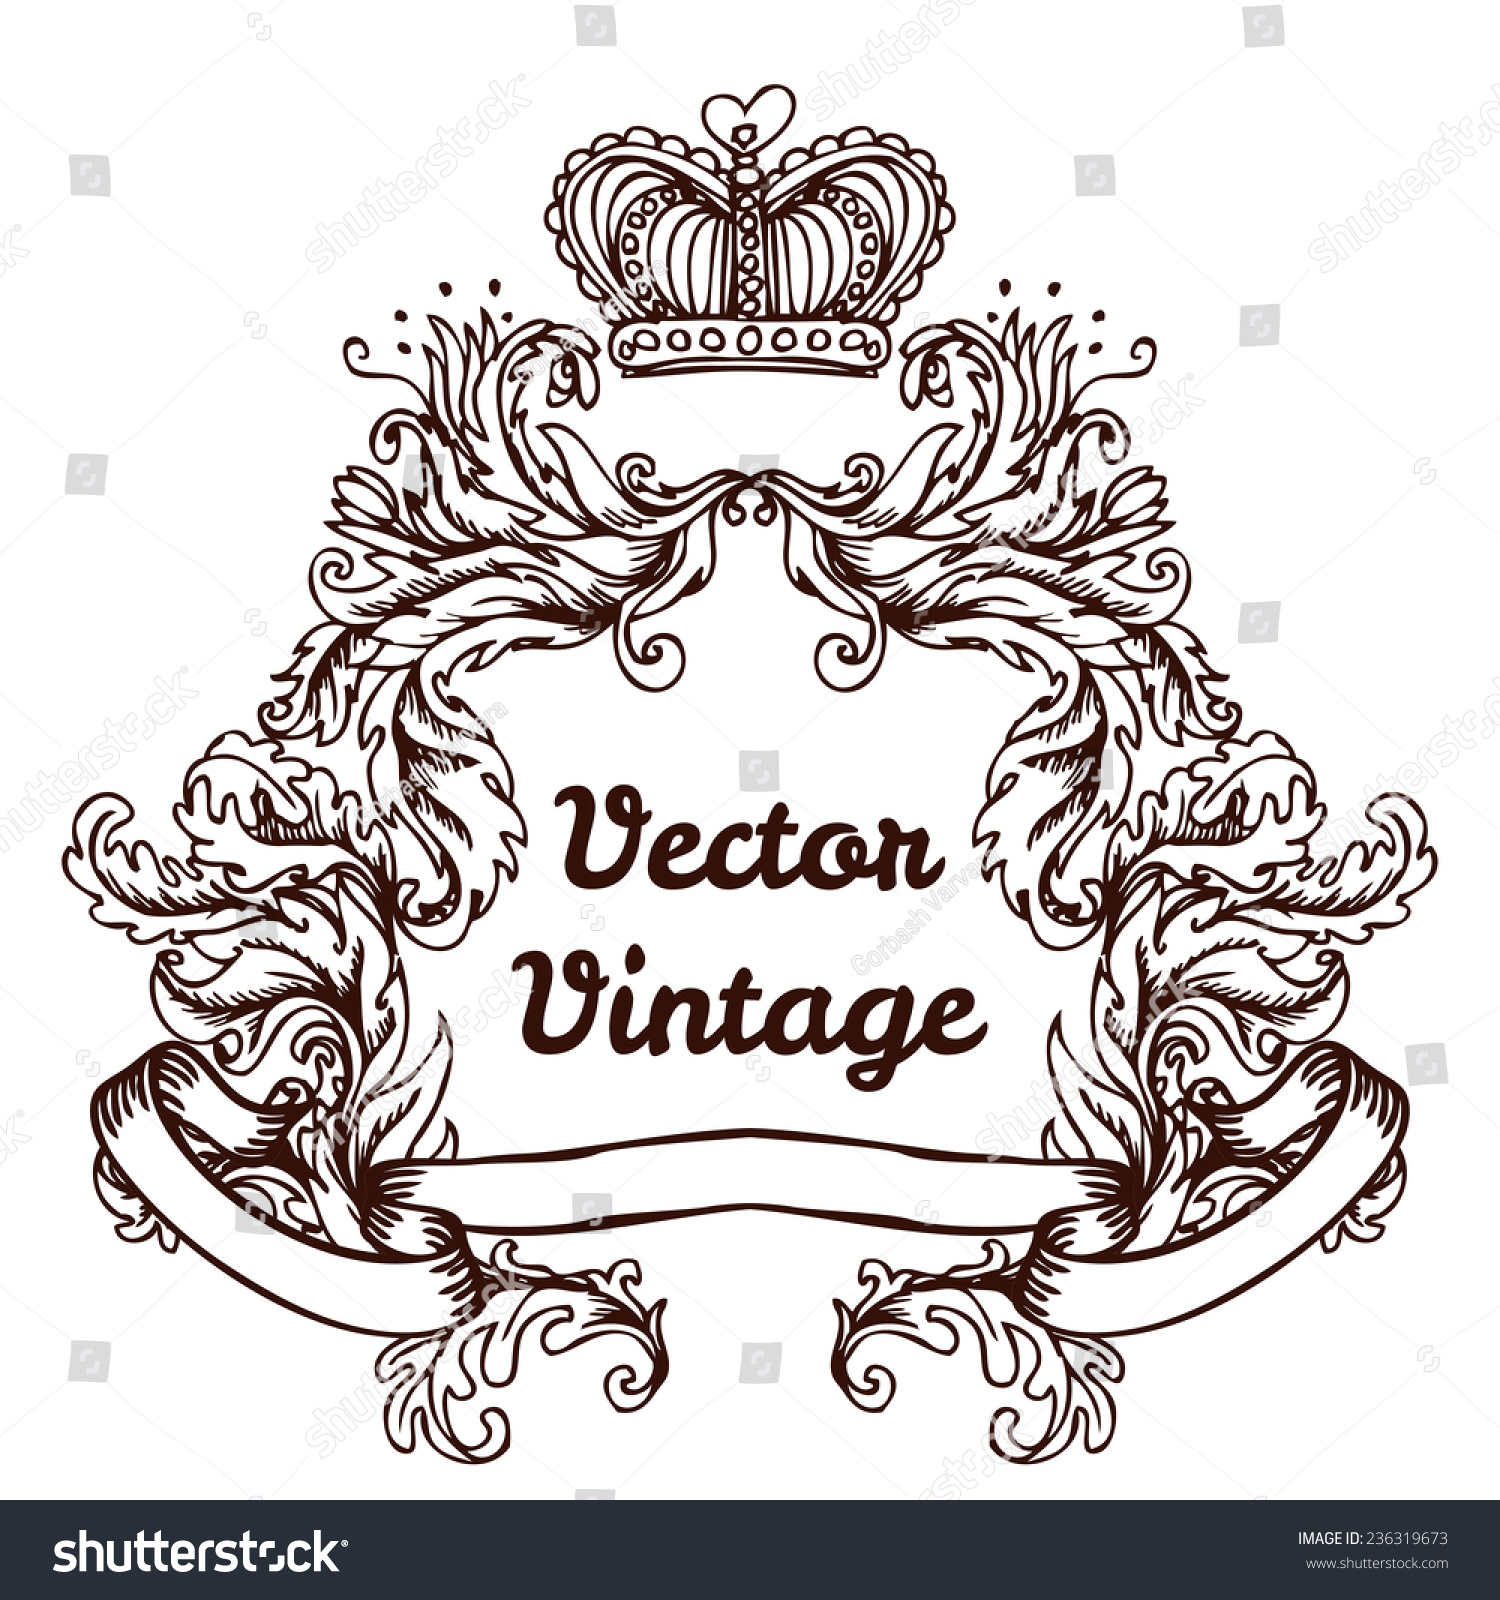 crest with vintage style design elements use for logo frame vector format very